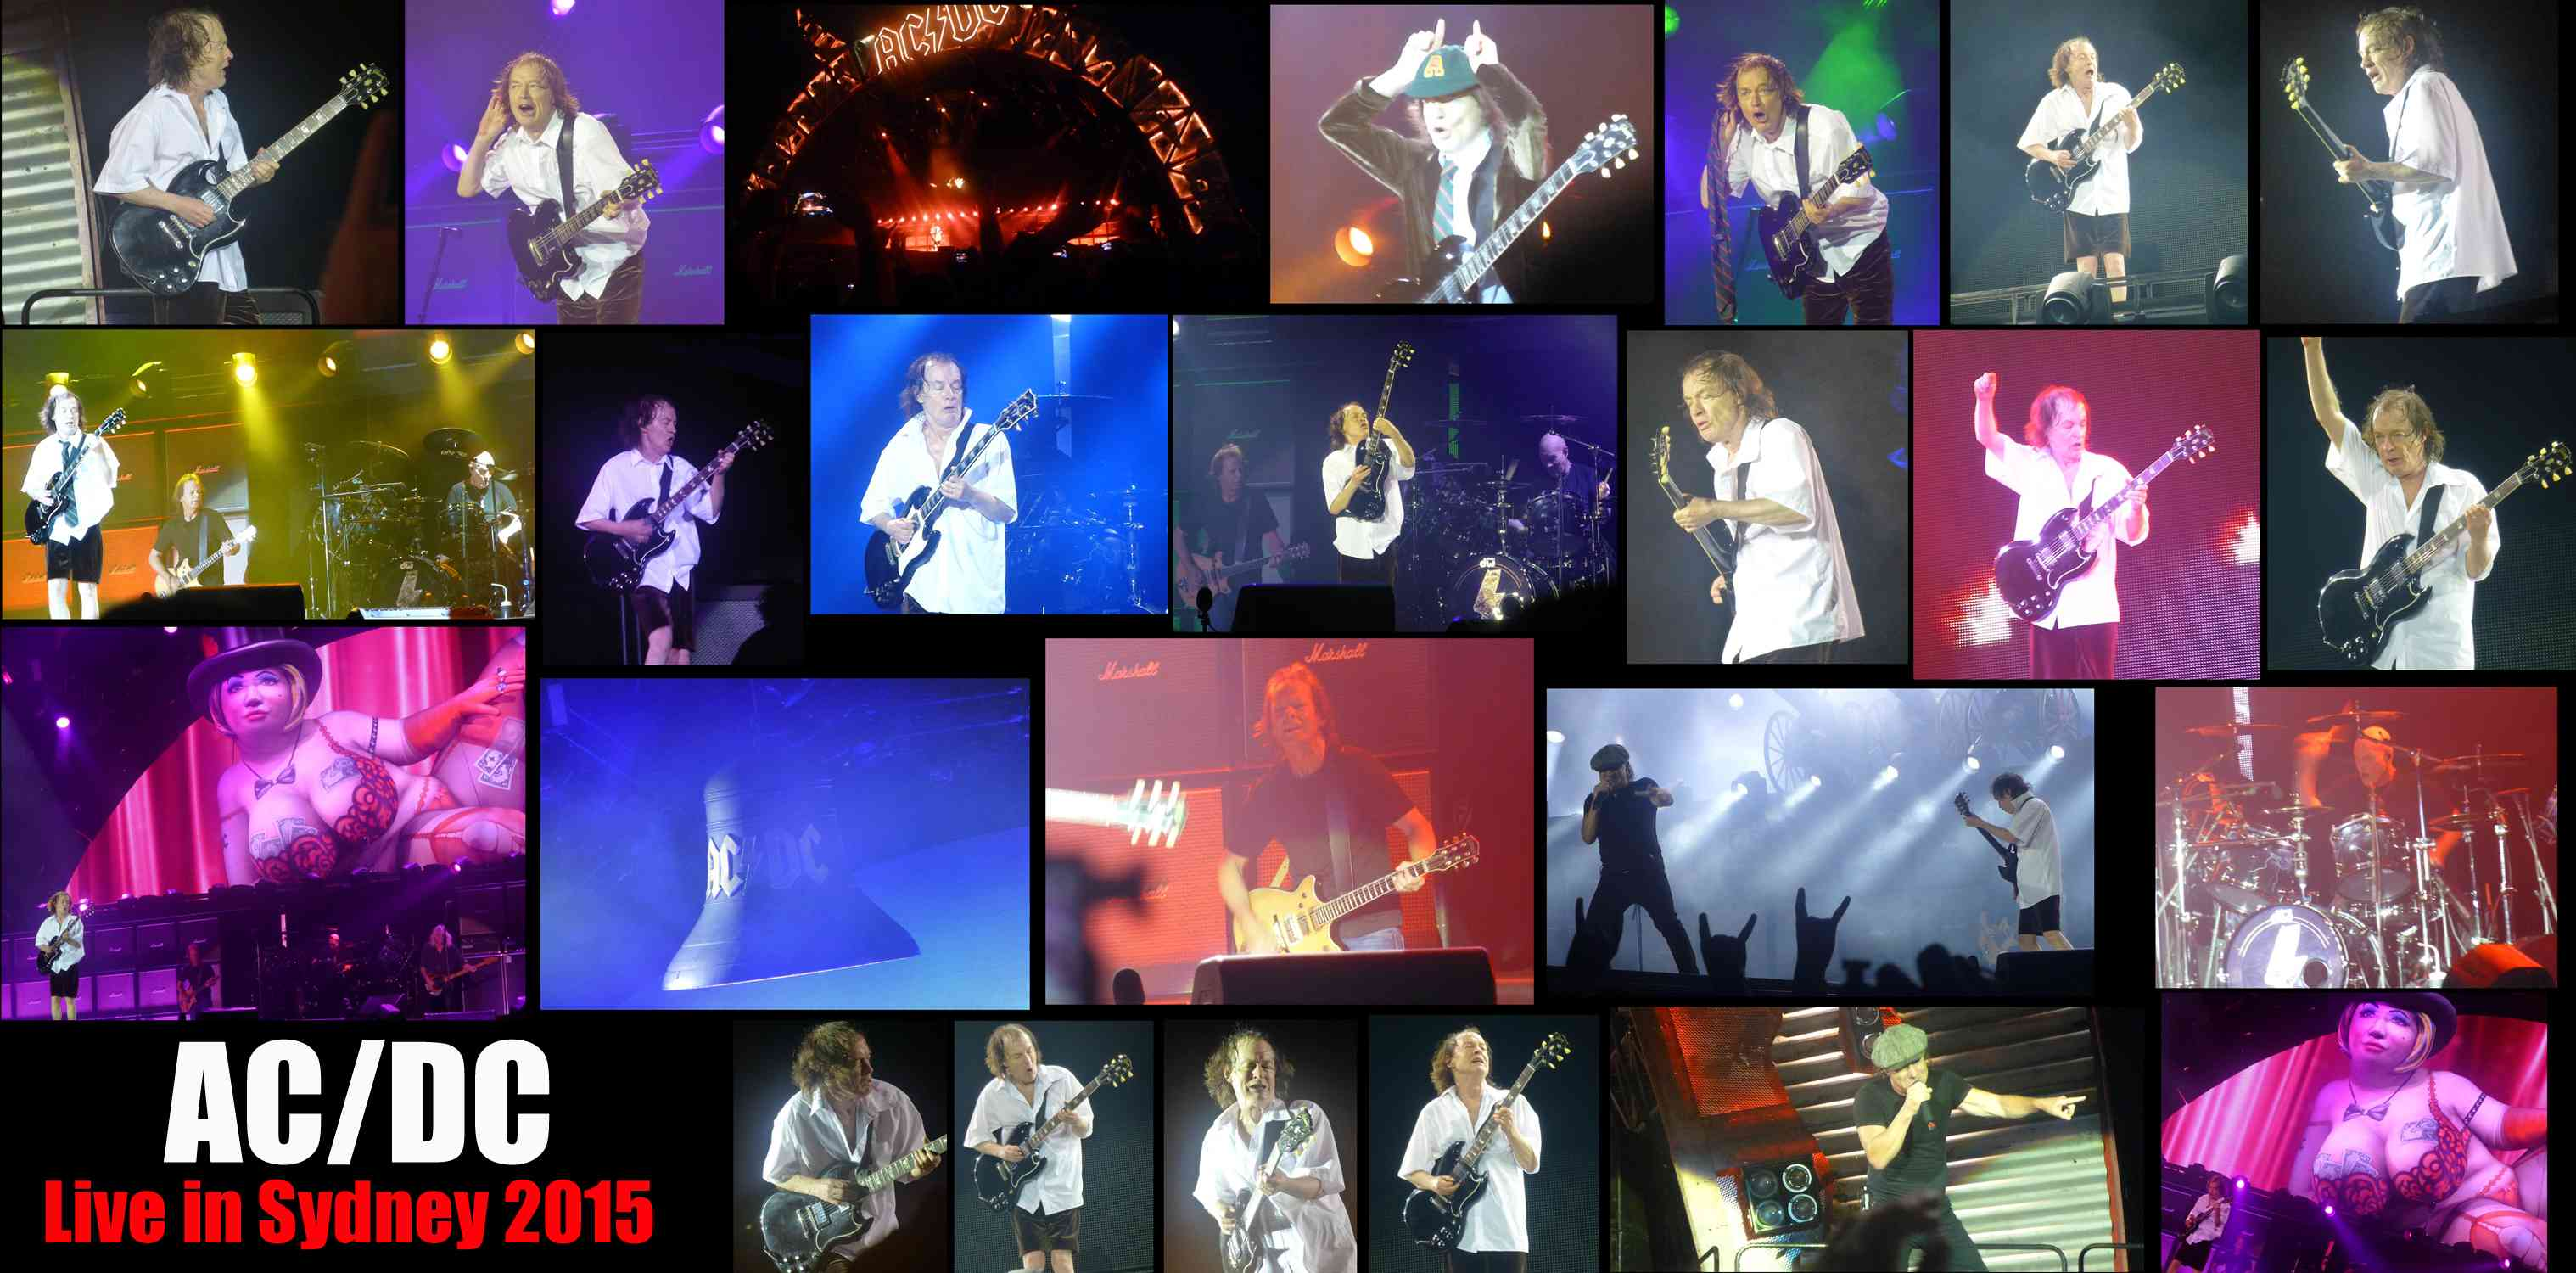 Mes petits montages photos ... - Page 8 Kalach10